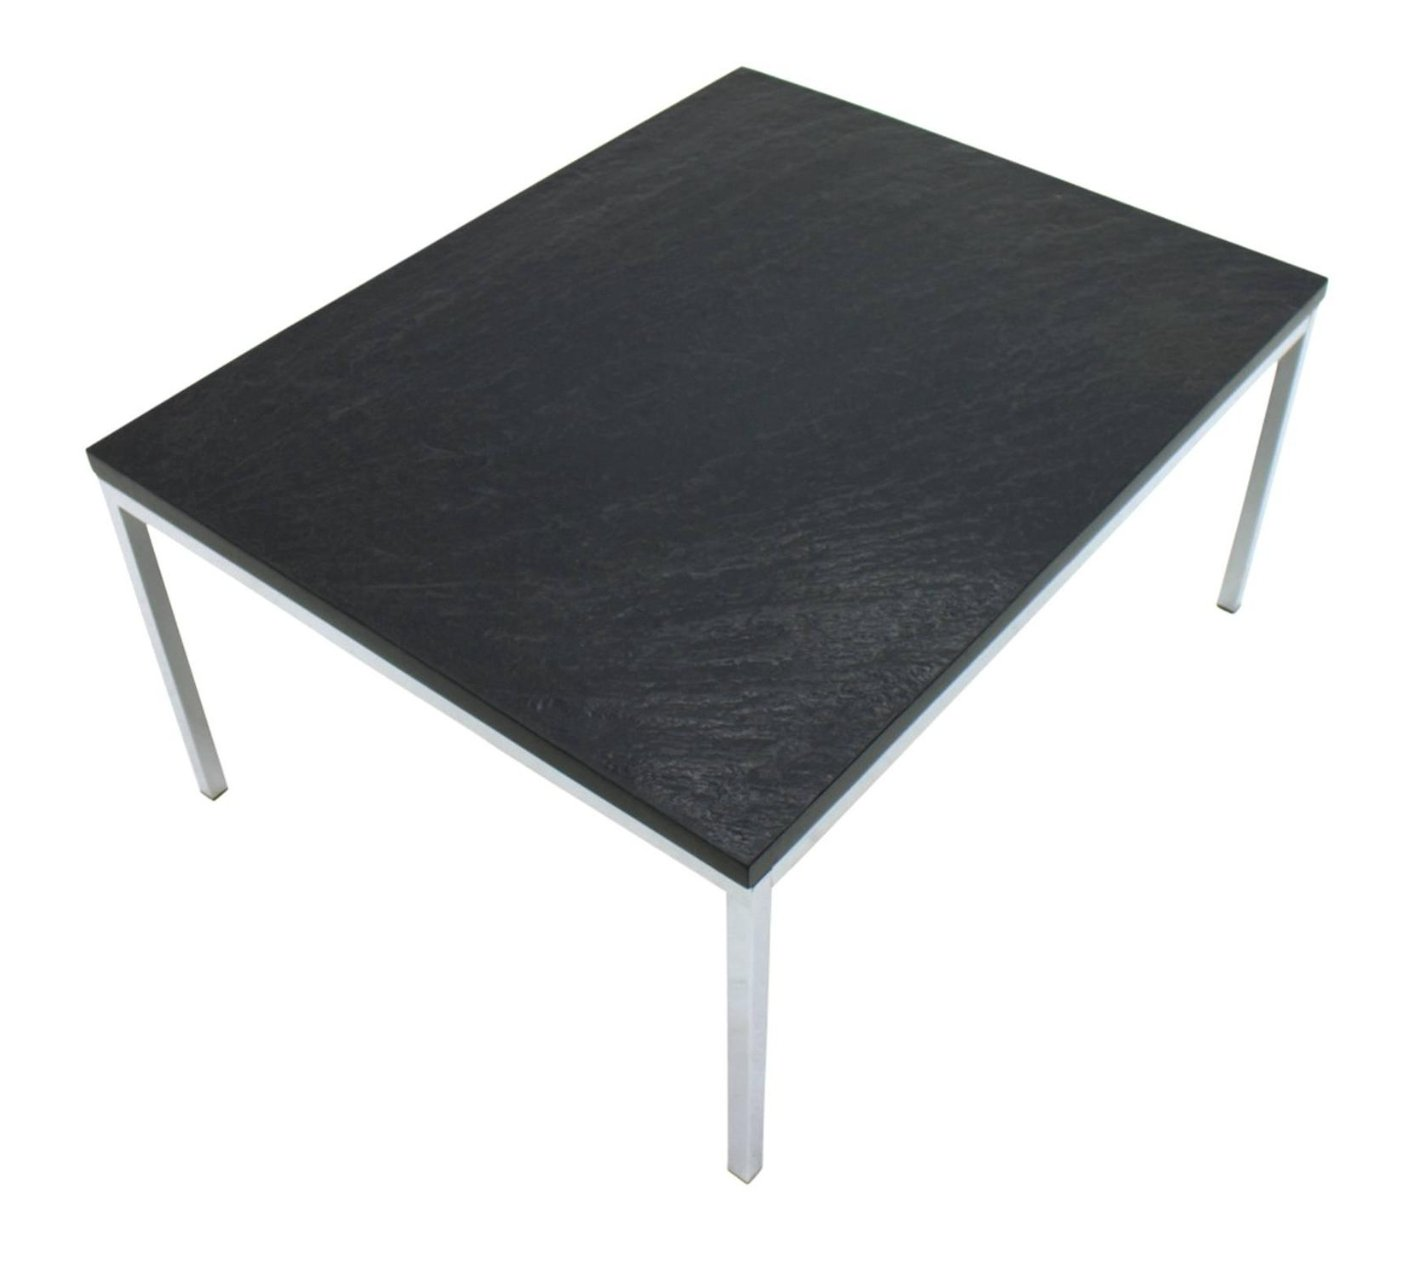 Slate top coffee table by florence knoll for knoll international 1960s 64313 Slate top coffee tables